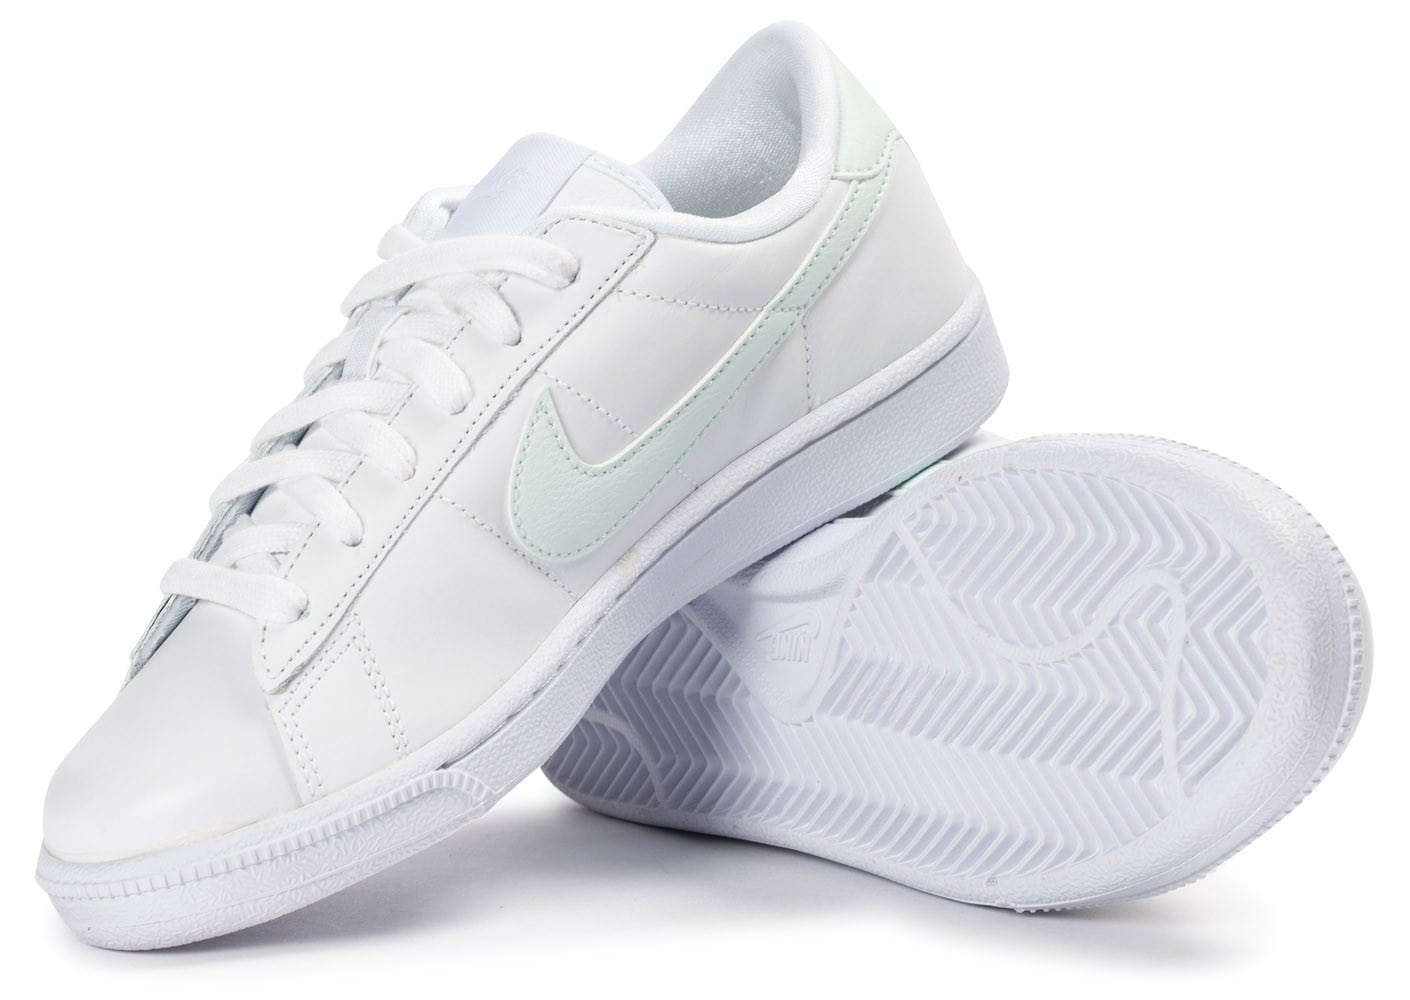 nike tennis classic blanche et vert eau chaussures toutes les baskets sold es chausport. Black Bedroom Furniture Sets. Home Design Ideas